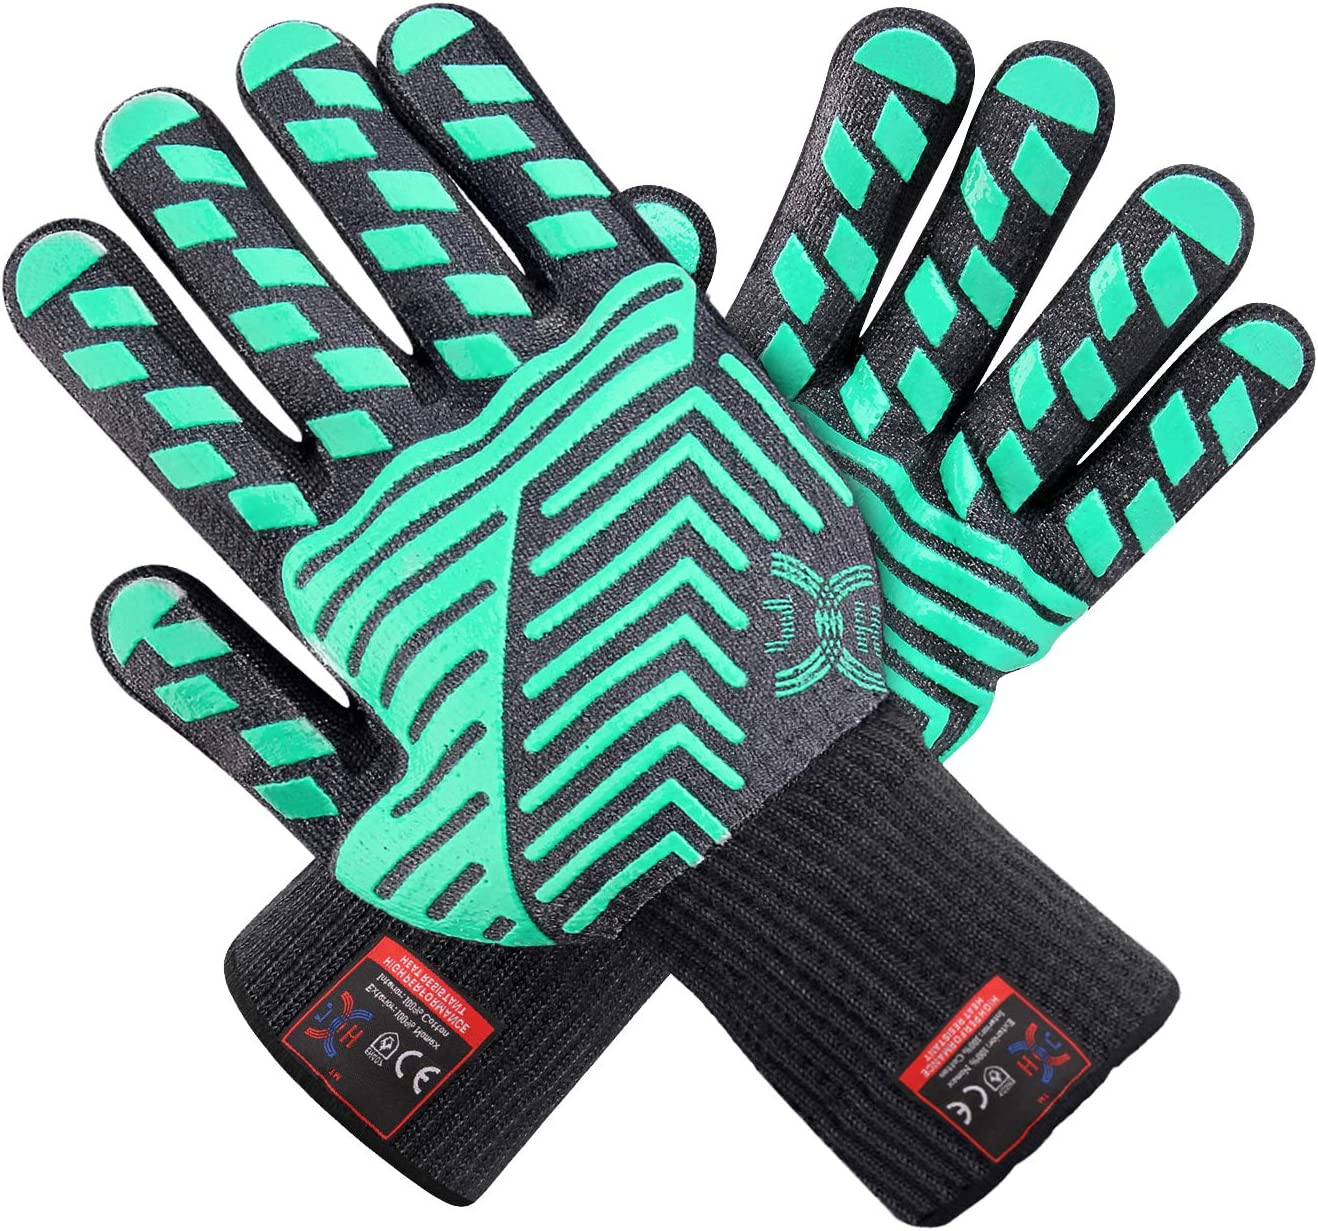 Pair of Heat Resistant Silicone Gloves Kitchen BBQ Oven Cooking Mitts Safety